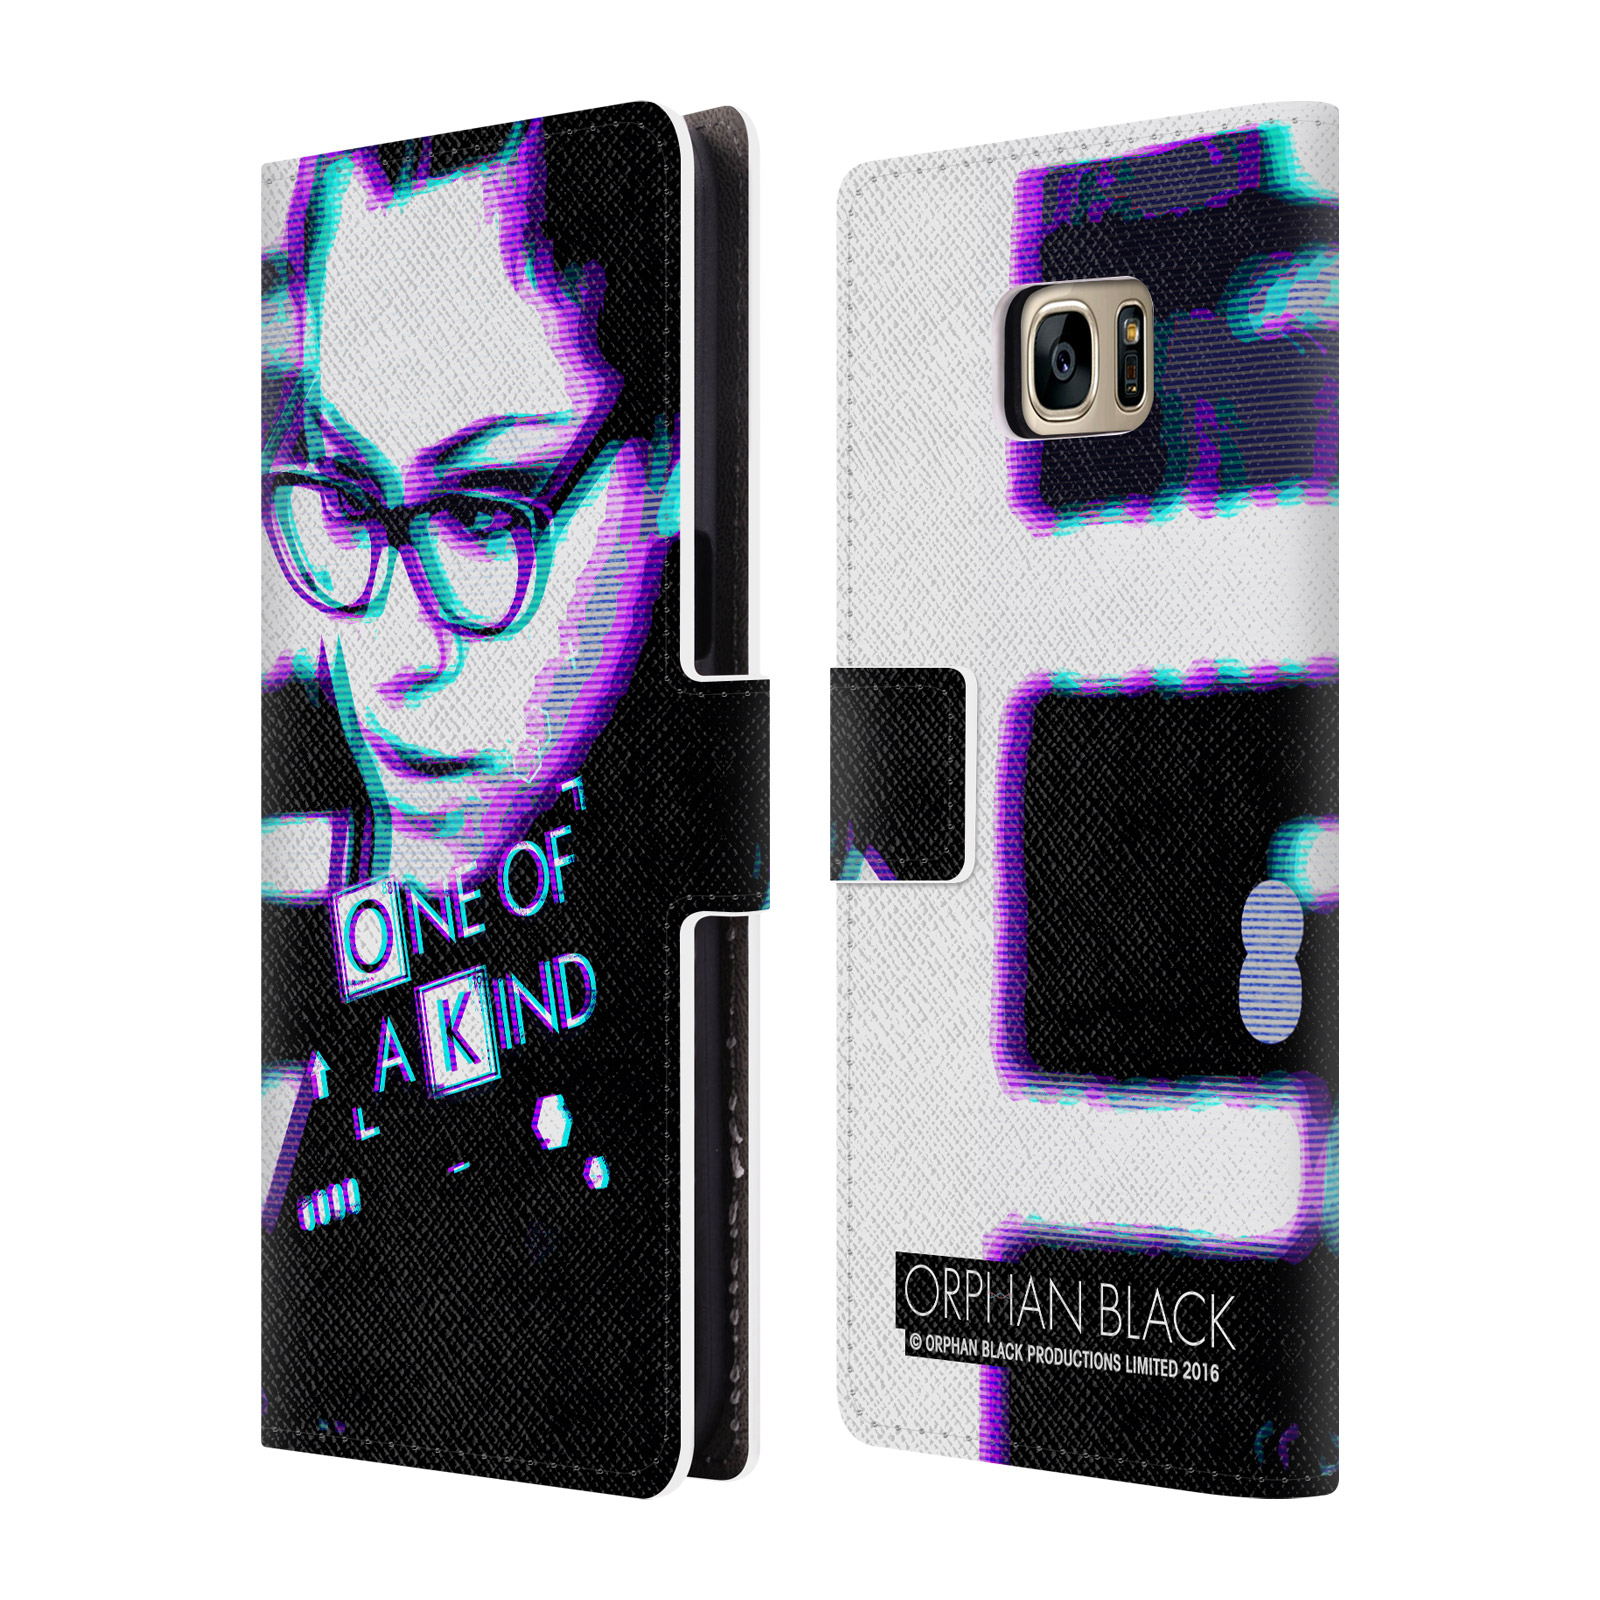 OFFICIAL ORPHAN BLACK ONE OF A KIND LEATHER BOOK WALLET CASE COVER FOR SAMSUNG PHONES 1